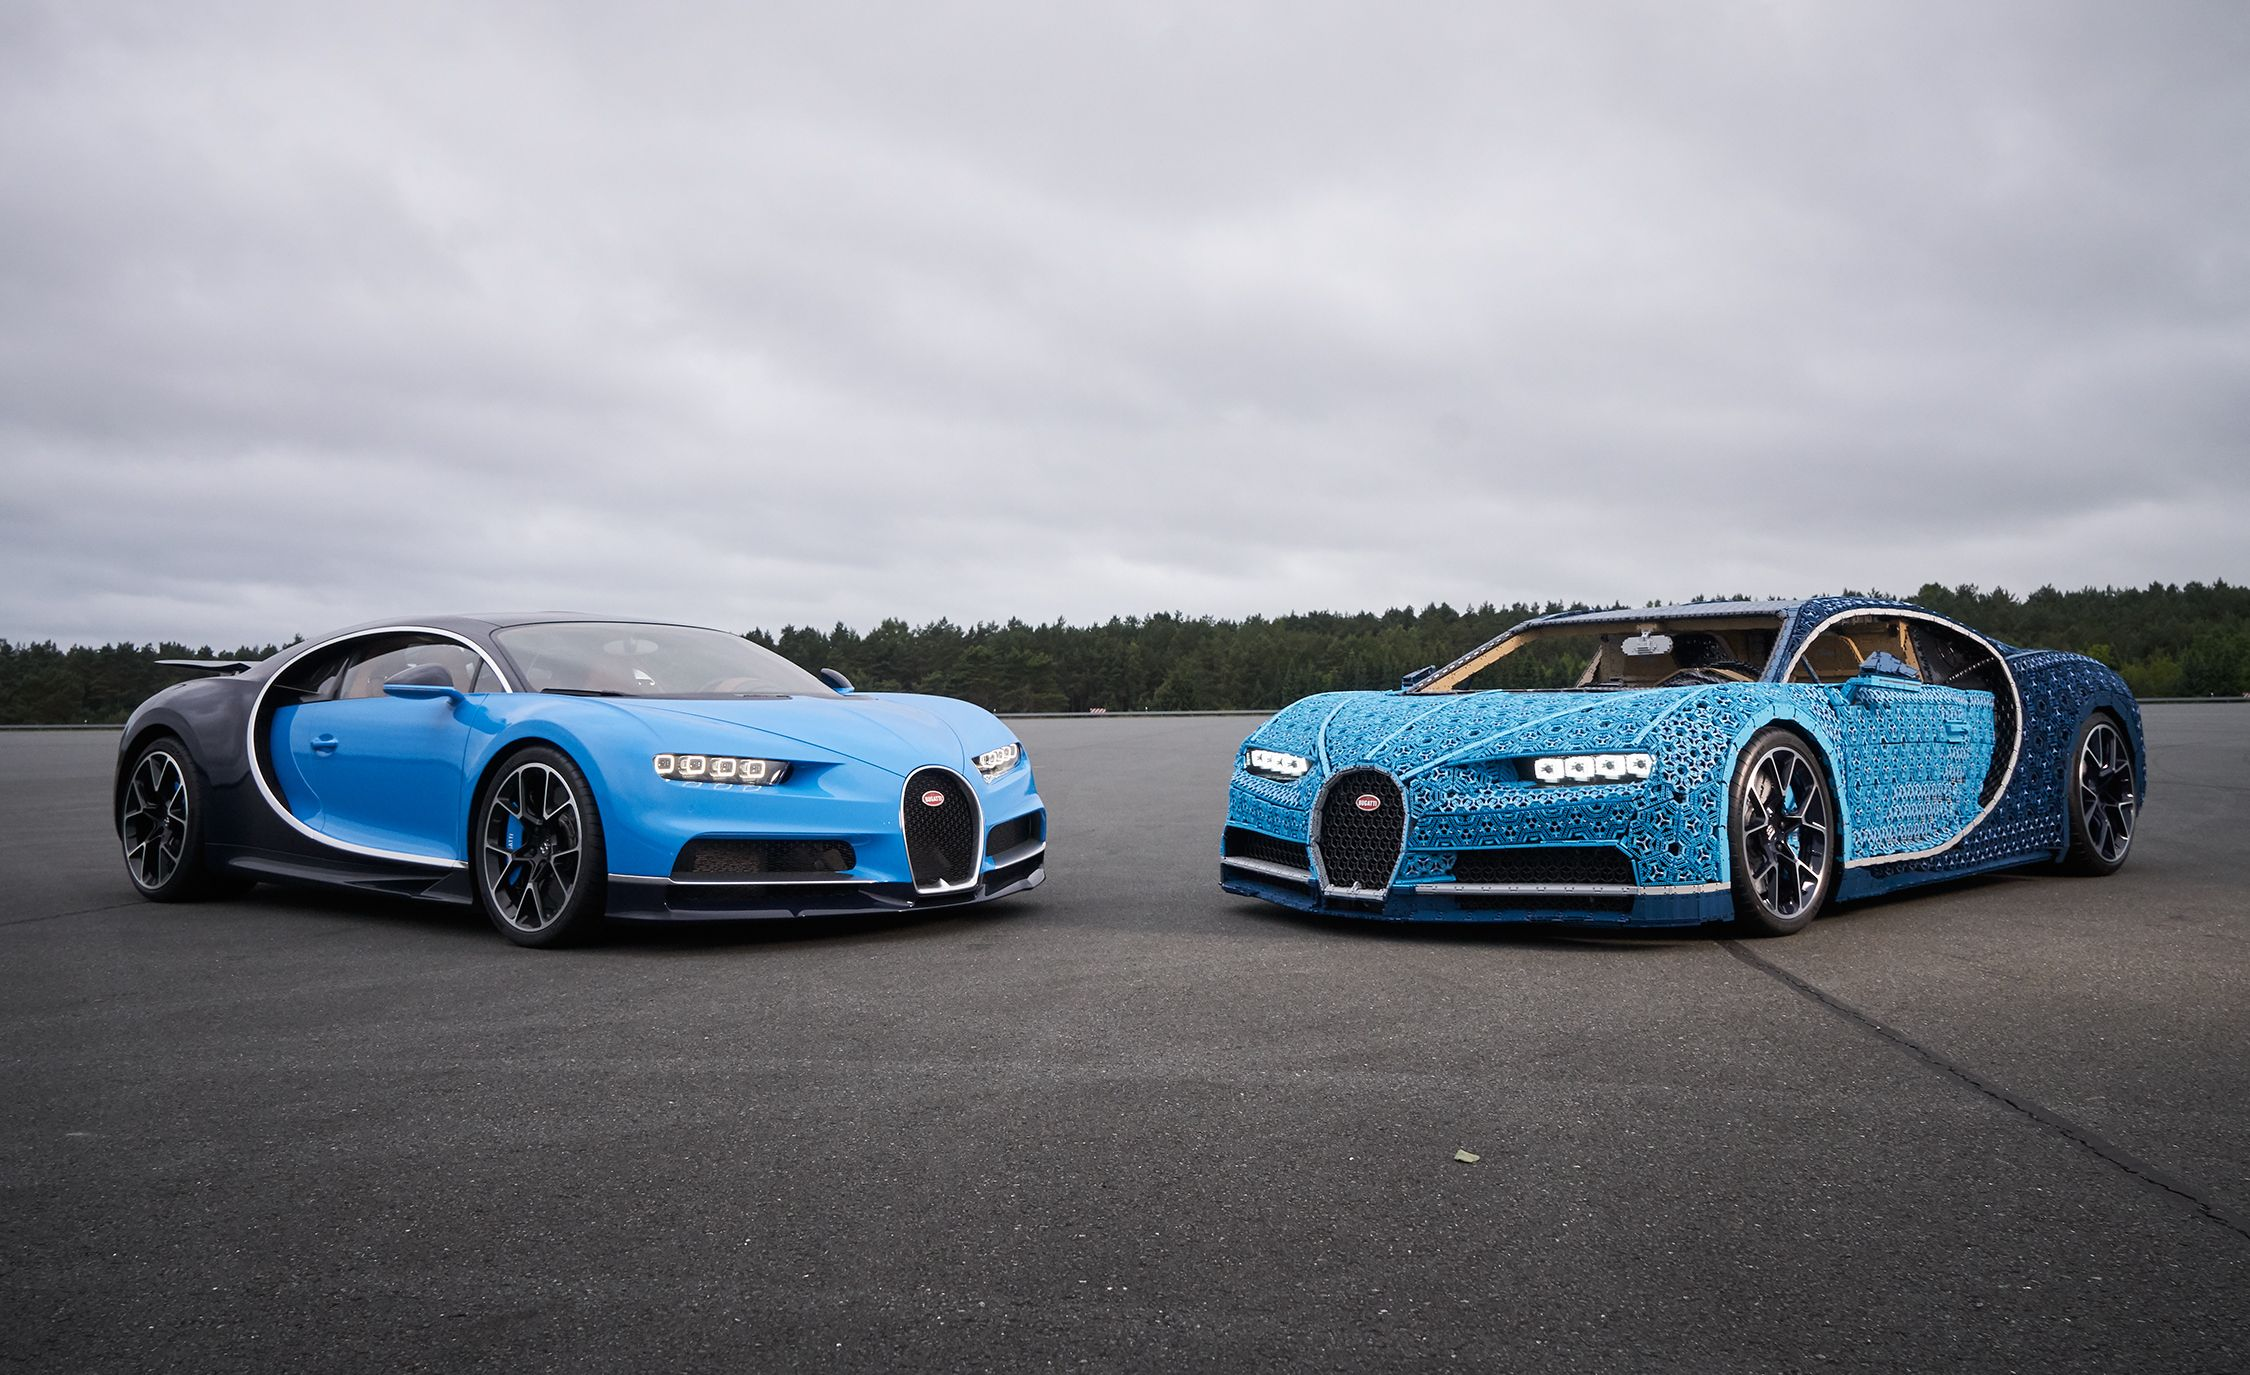 This Drivable Lego Bugatti Chiron Has 2304 Electric Motors And One Million Pieces